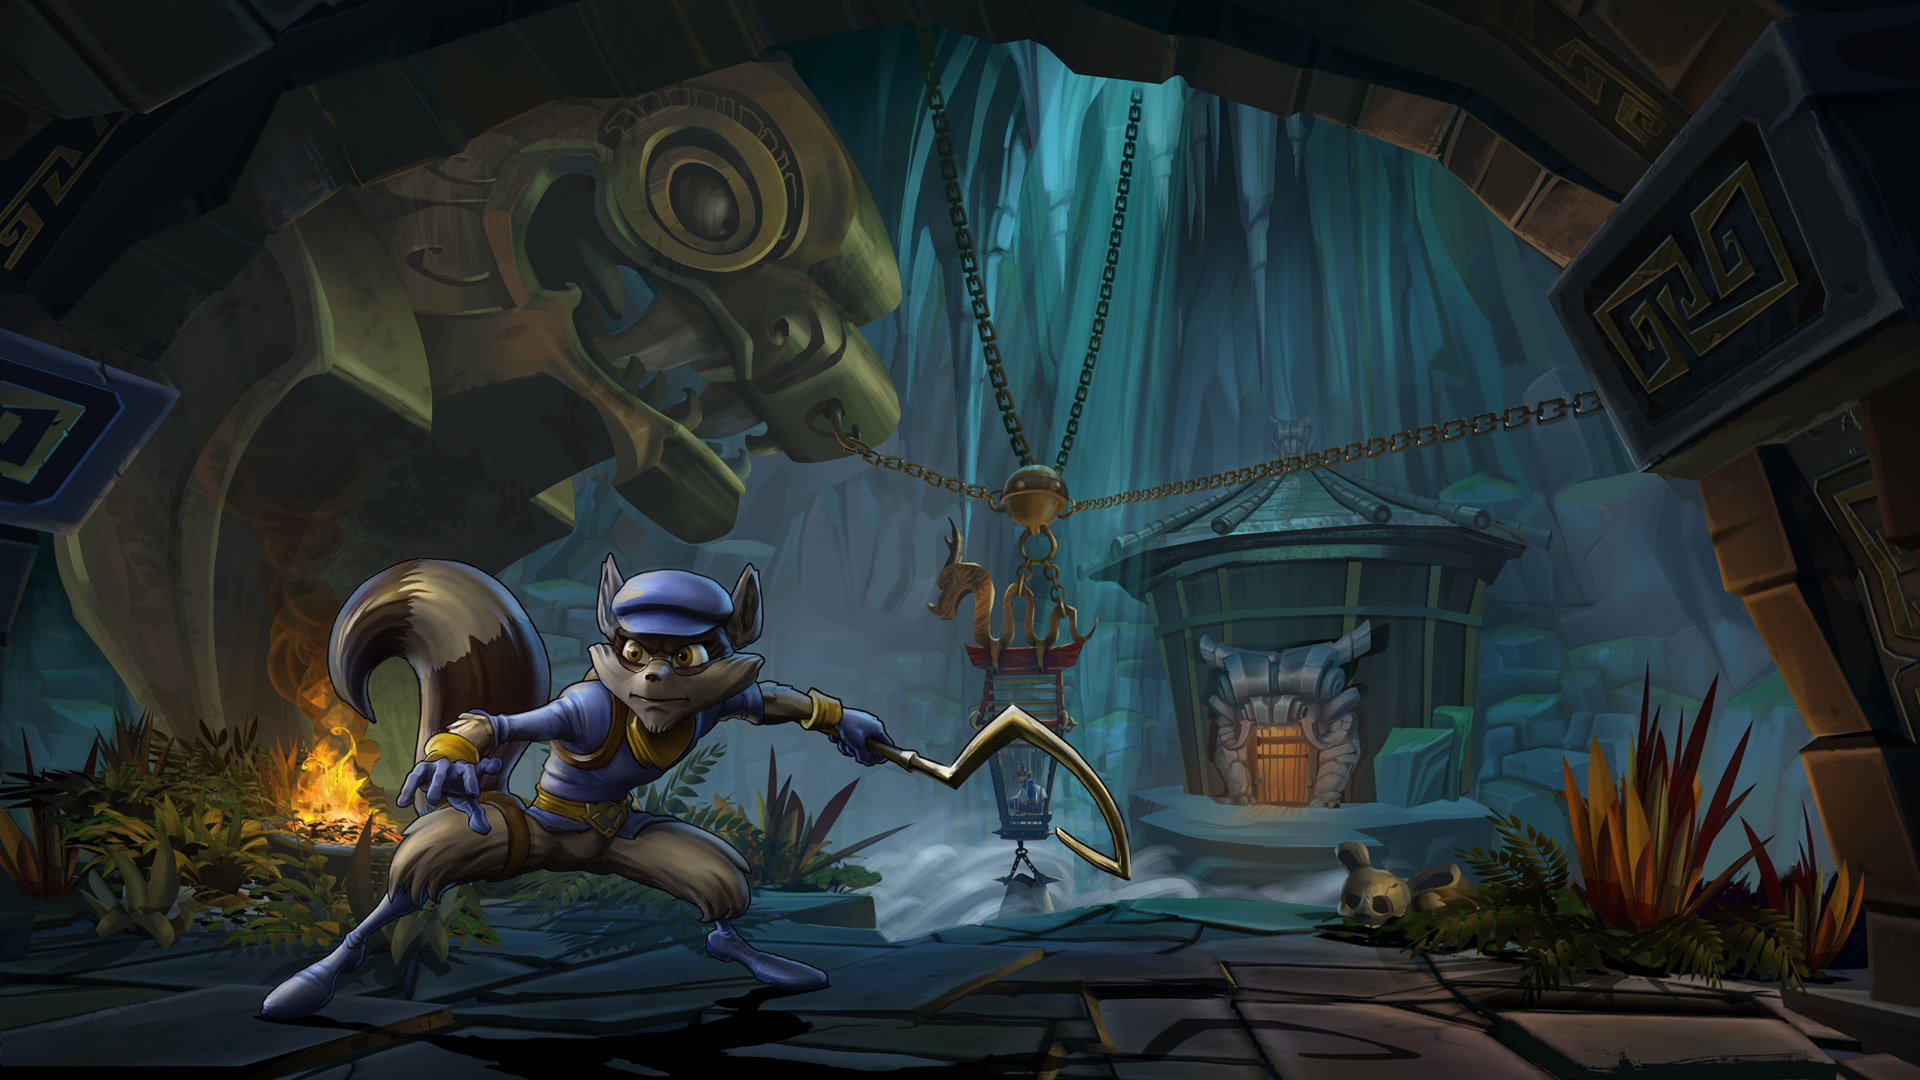 Sly Cooper Thieves in Time Wallpaper in 1920x1080 1920x1080